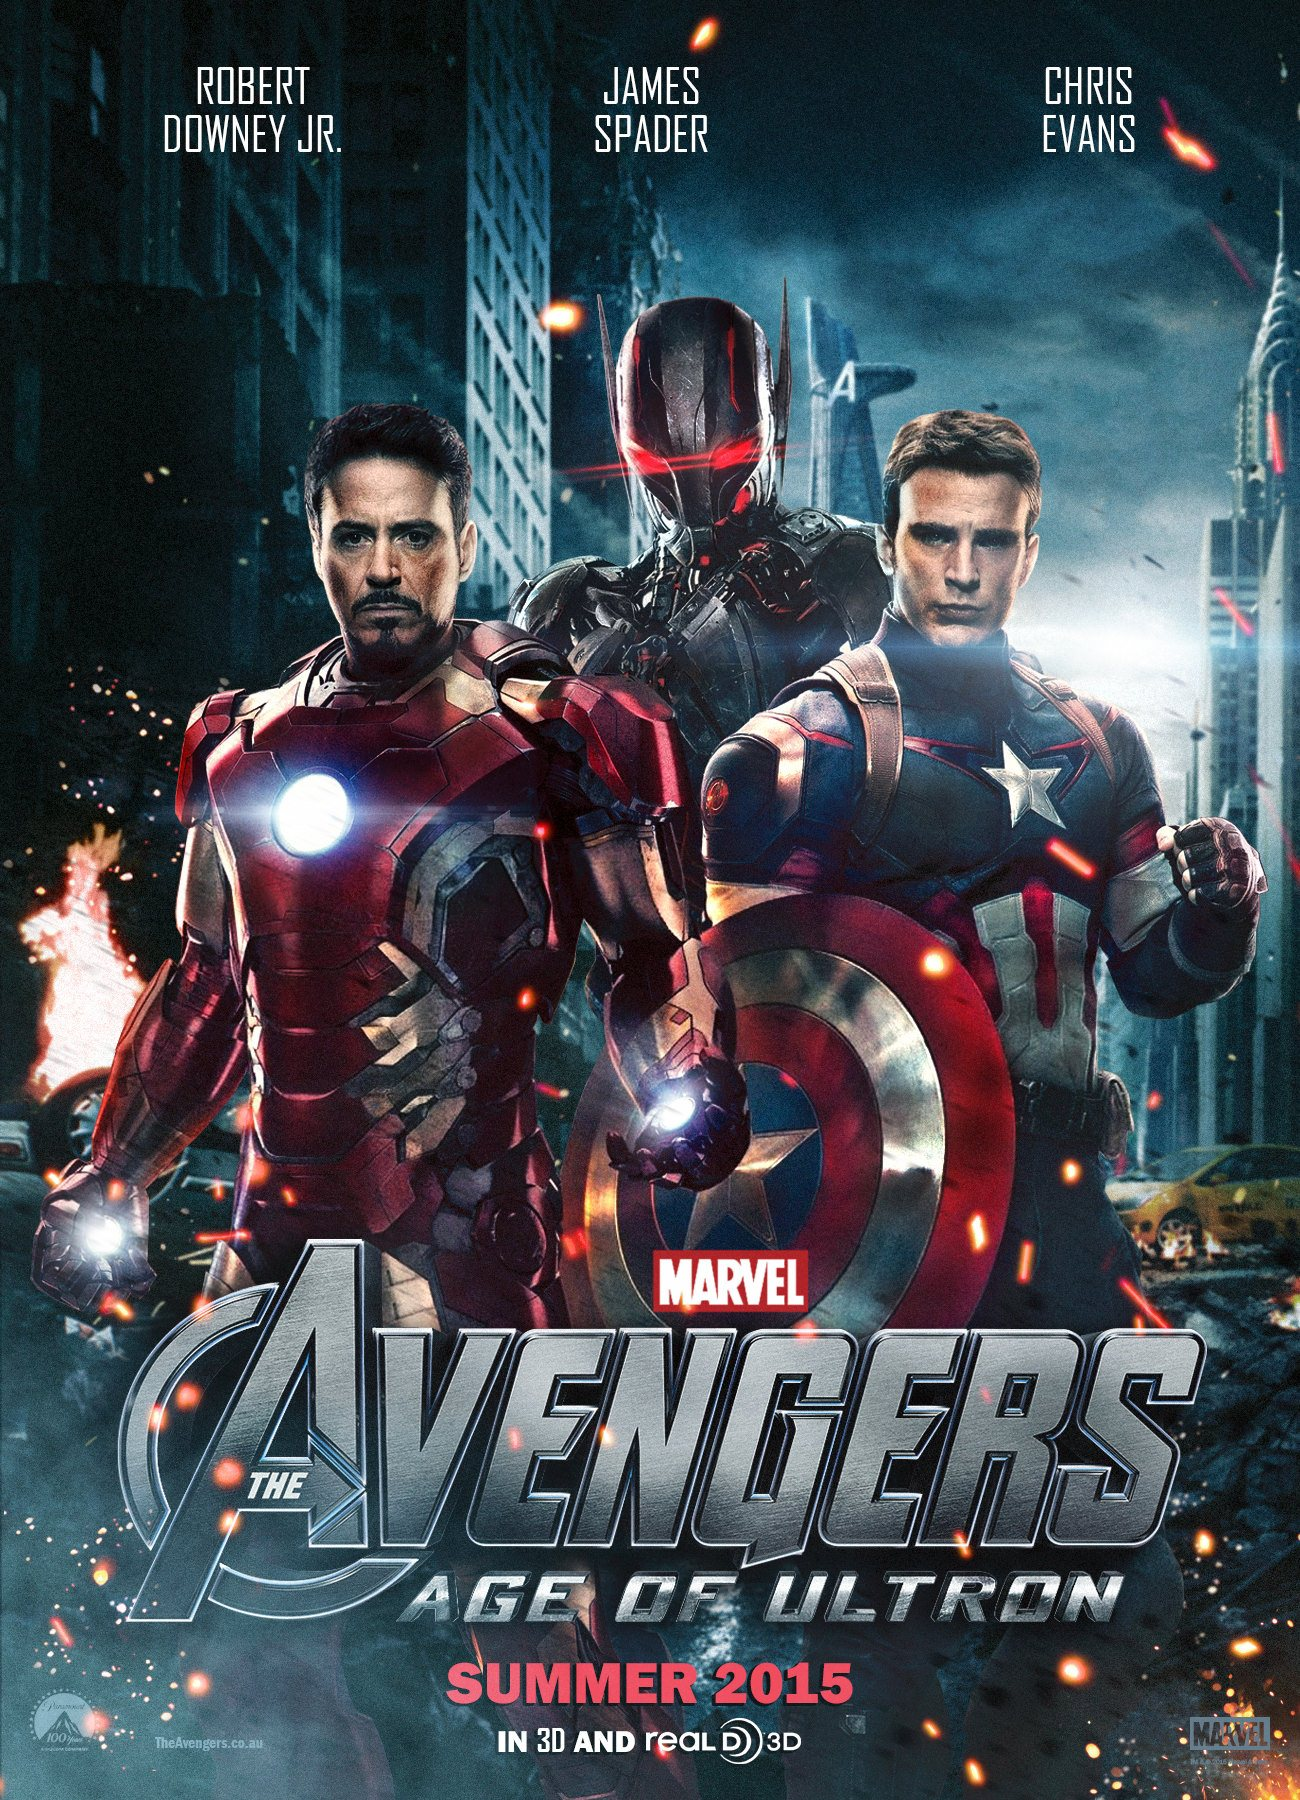 Avengers : L'�re d'Ultron | Multi | 1CD | TrueFrench | HDTC MD